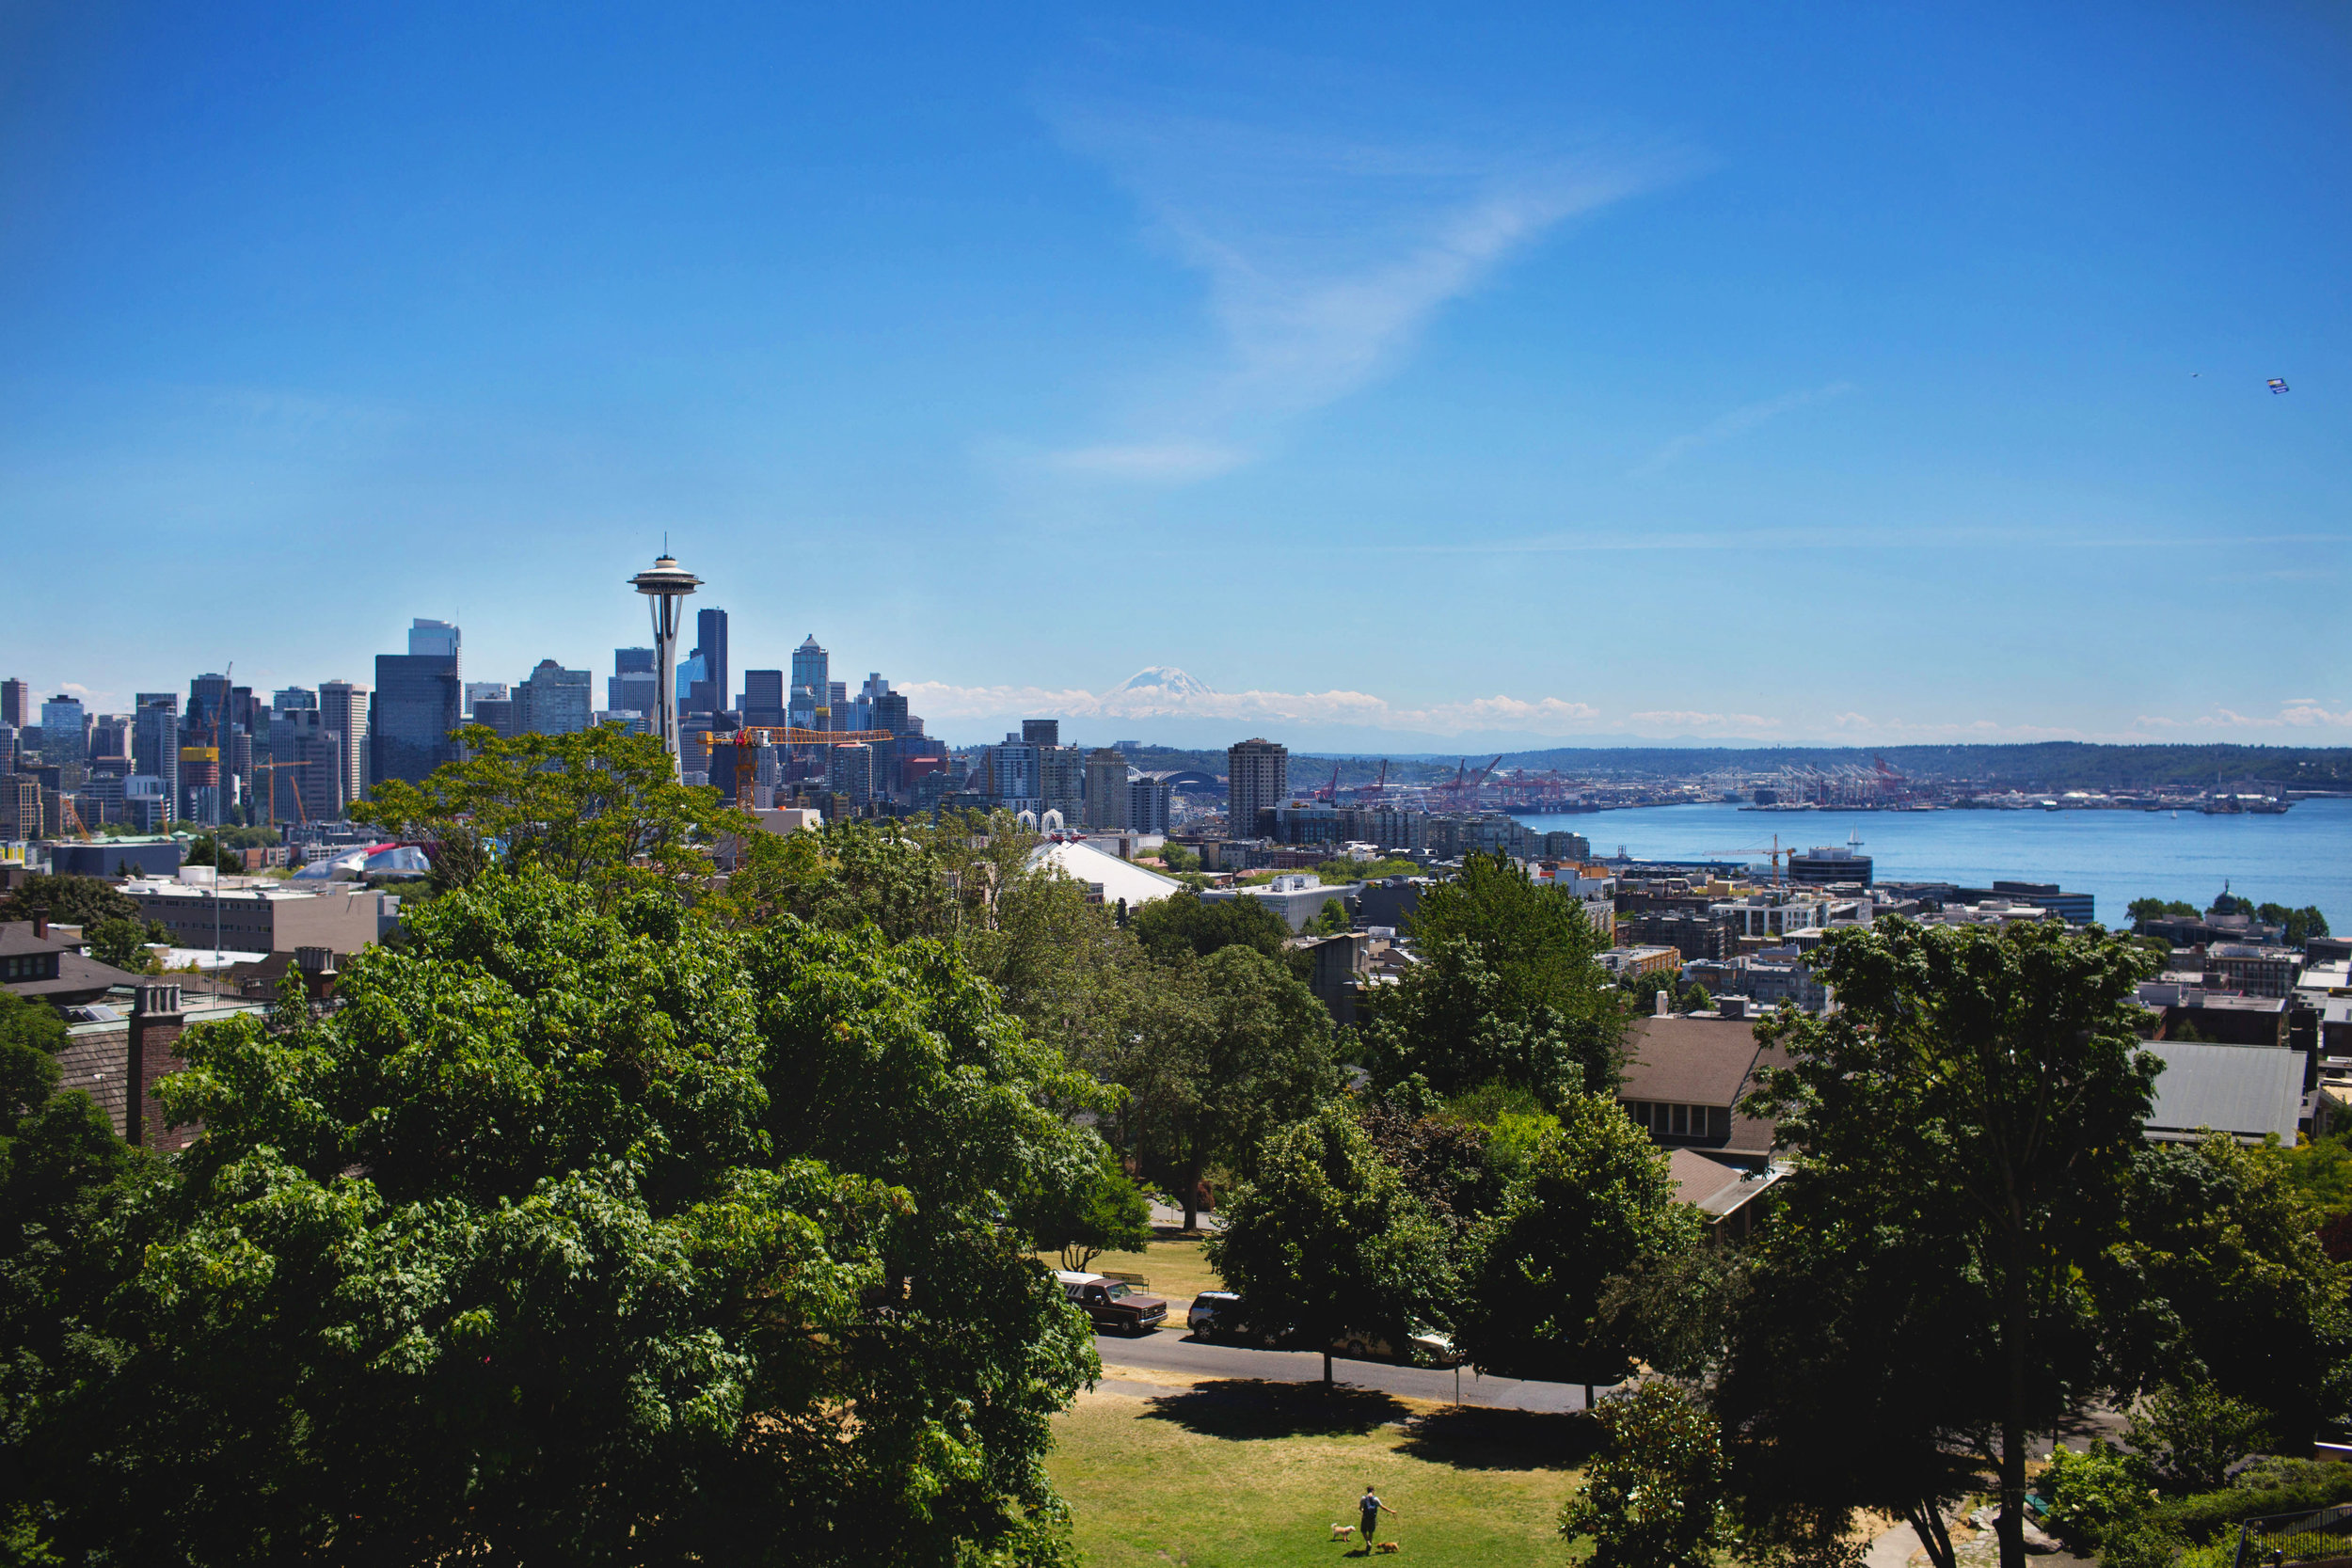 Seattle | You've Got Flair